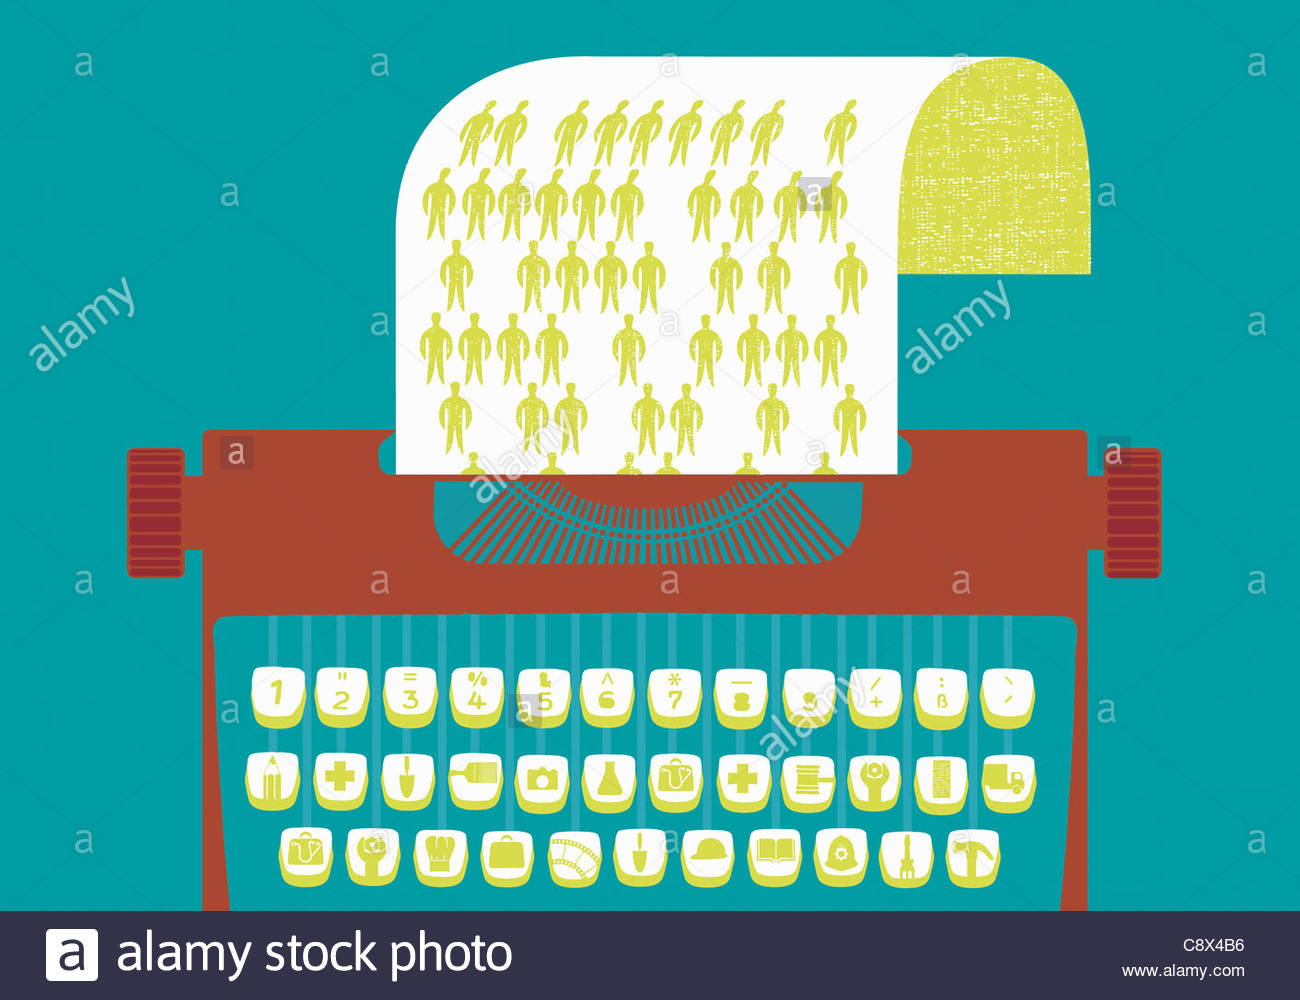 Typewriter with graphics keys representing occupations - Stock Image